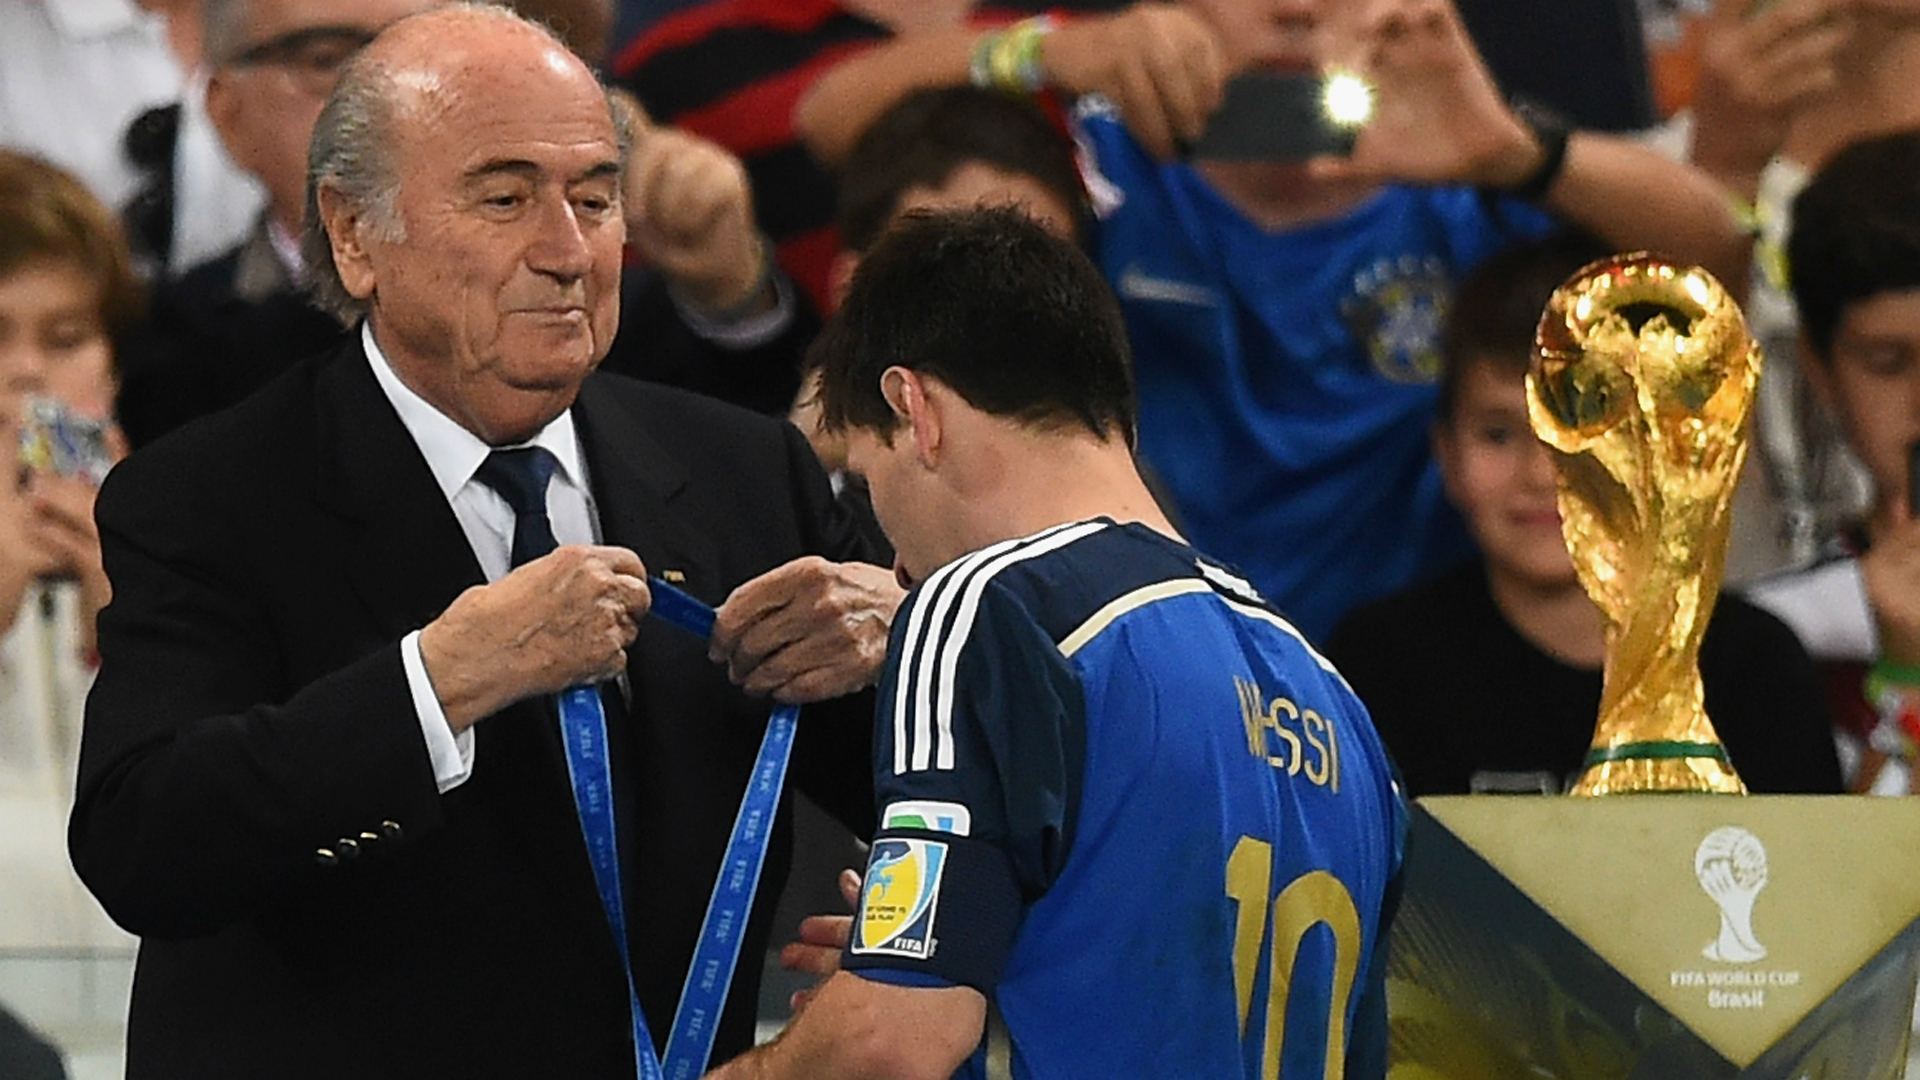 Messi will not give up on World Cup dream after 'terrible' 2014 final defeat